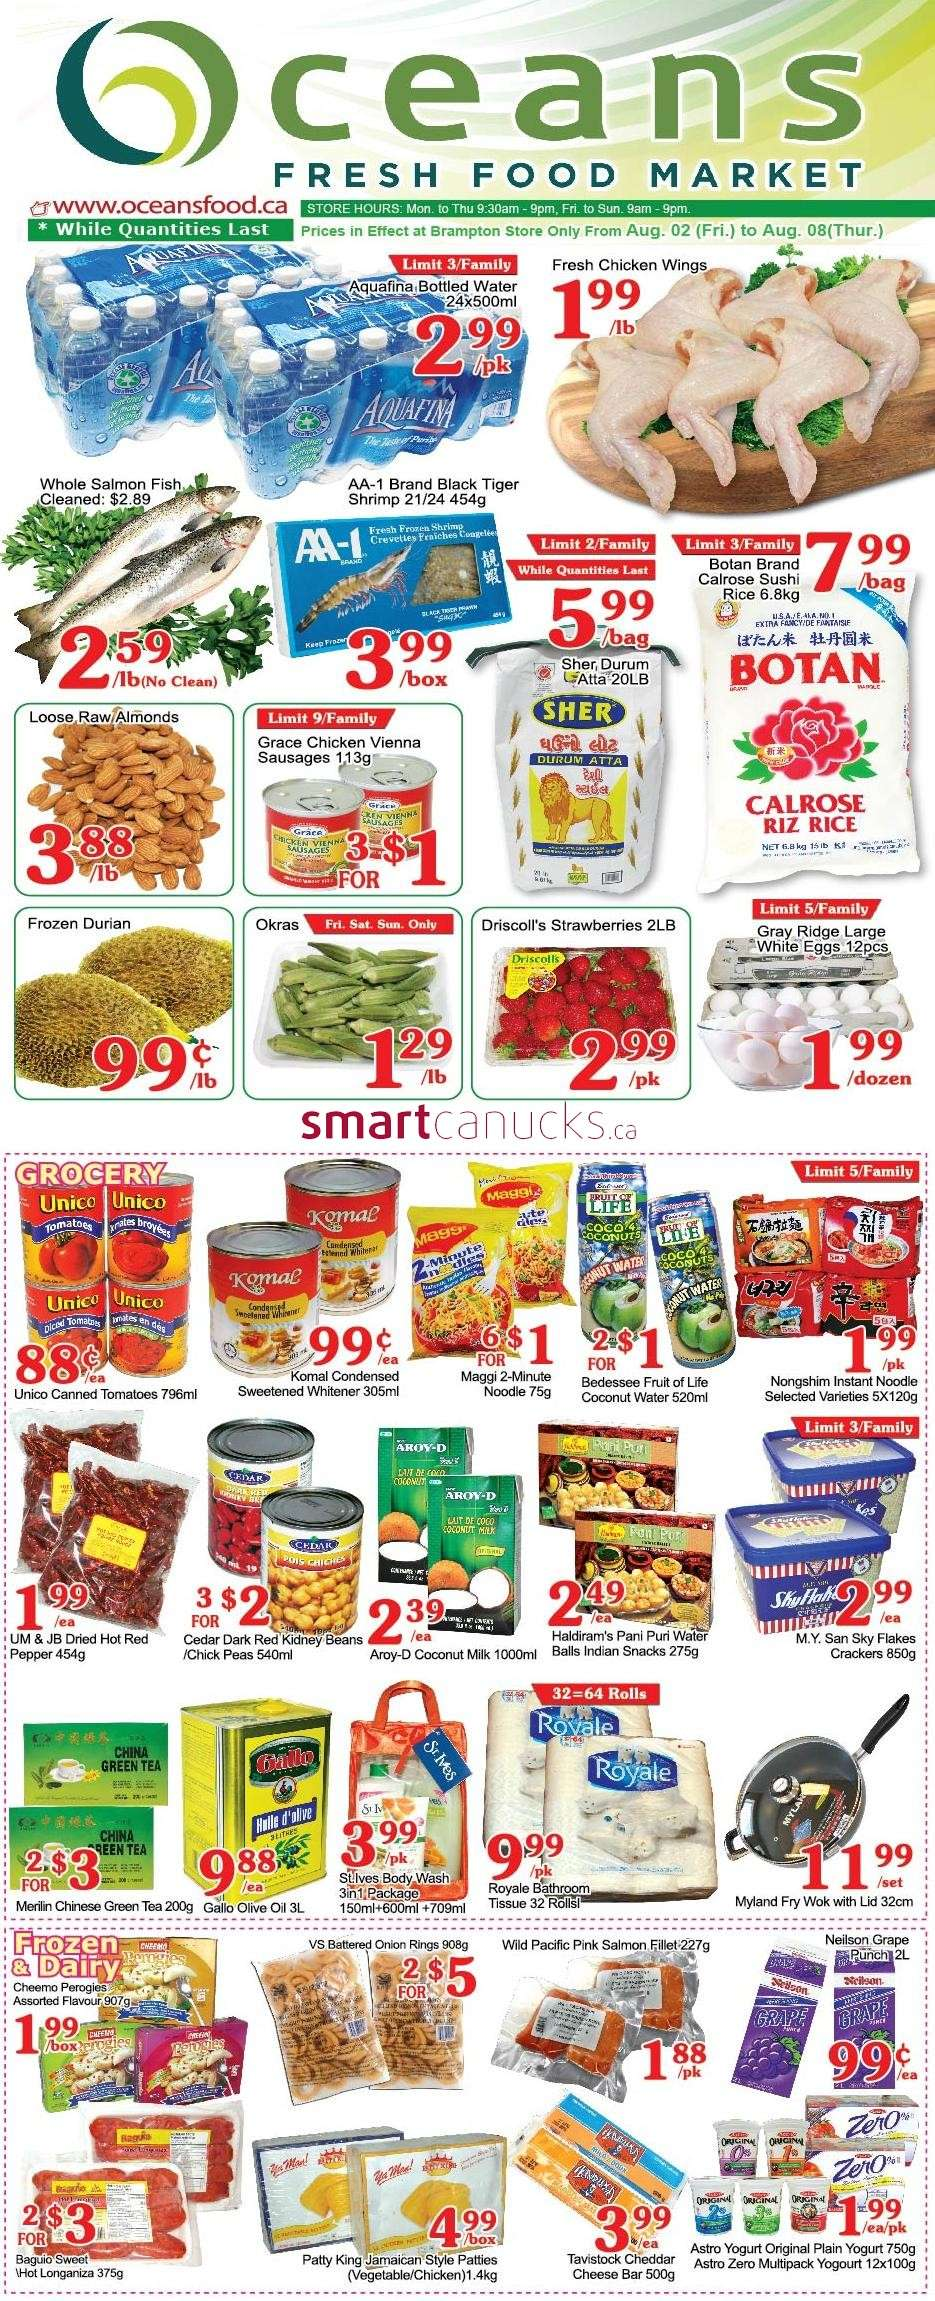 Food Market Food Coupons